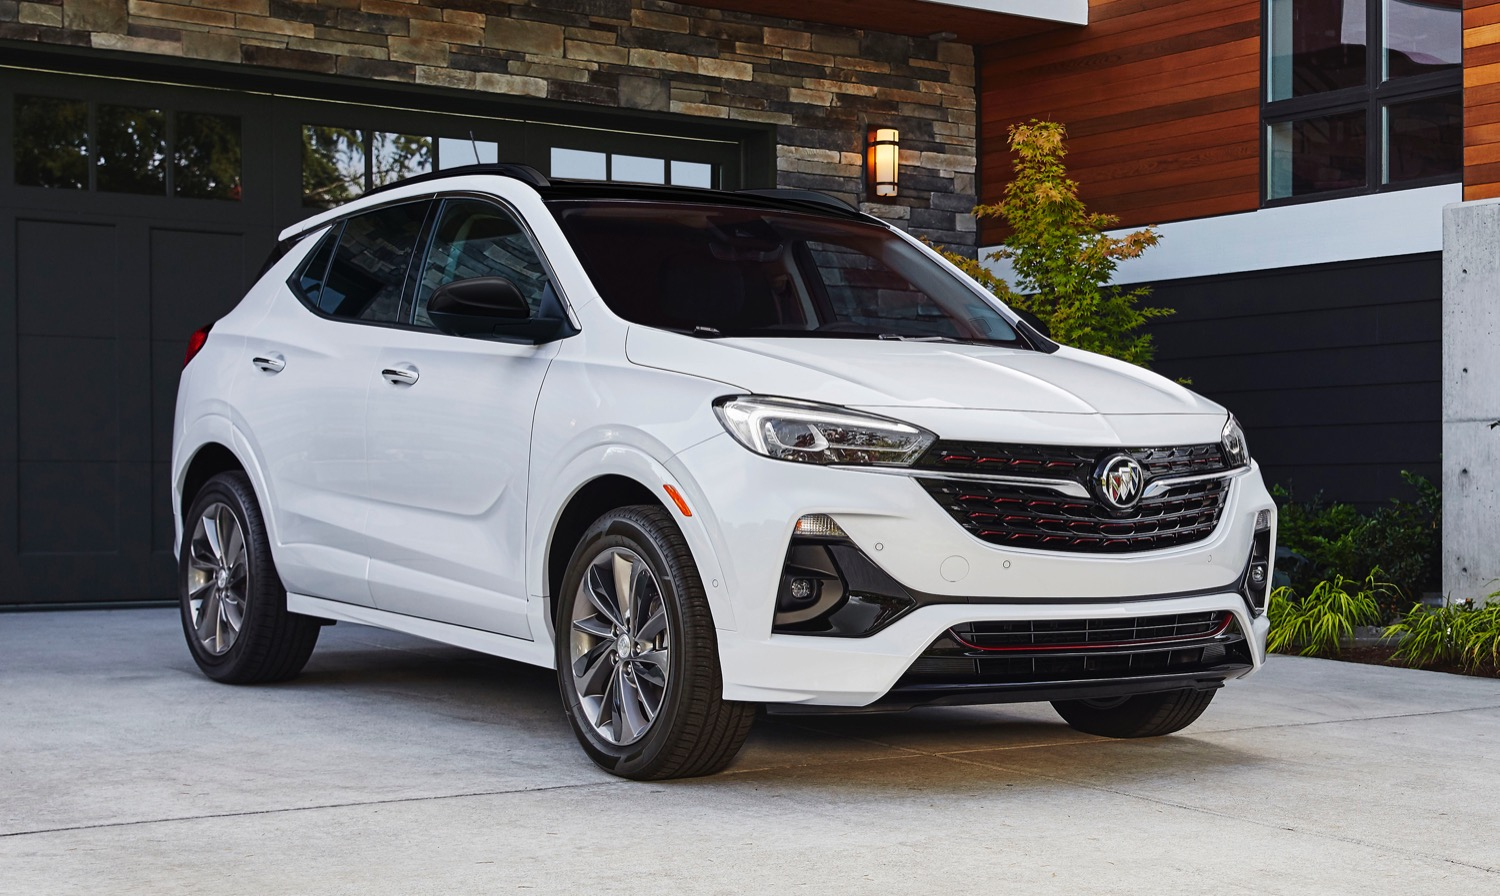 Buick Encore Gx Discount Offers Cash In February 2020 | Gm 2022 Buick Encore Configurations, Dimensions, Deals